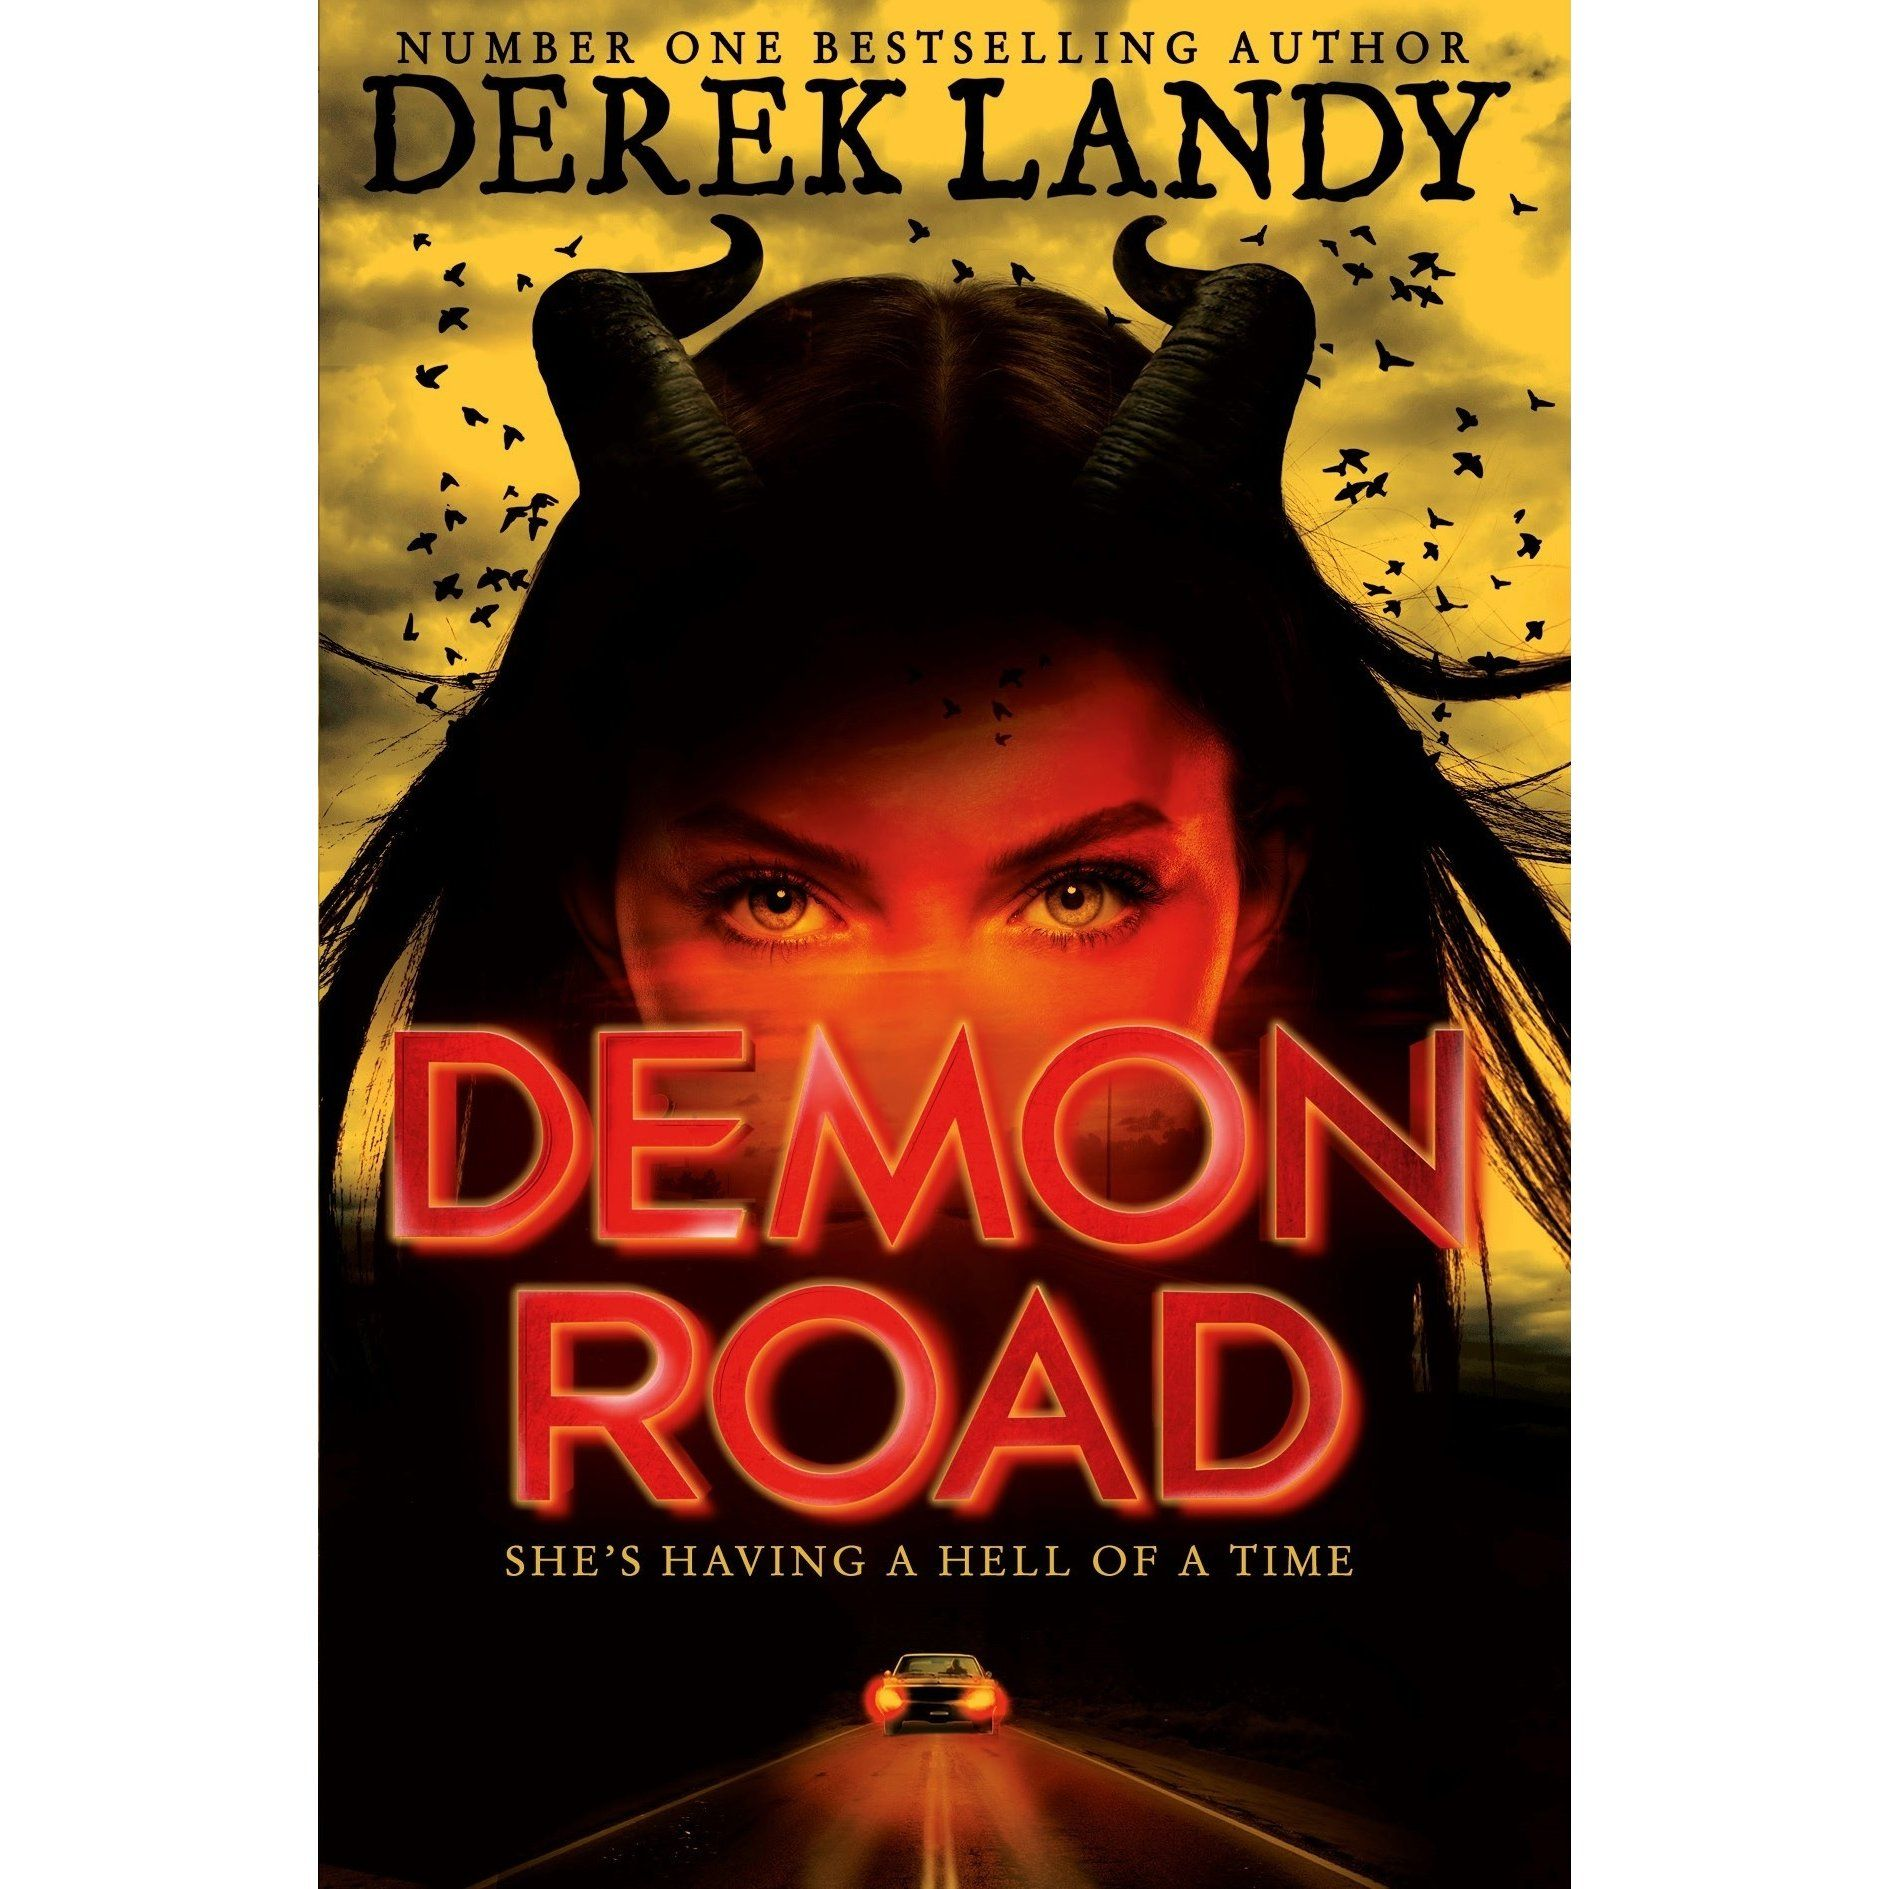 Full of Landy's trademark wit, action and razor sharp dialogue, DEMON ROAD kicks off with a shocking opener and never lets up the pace in...